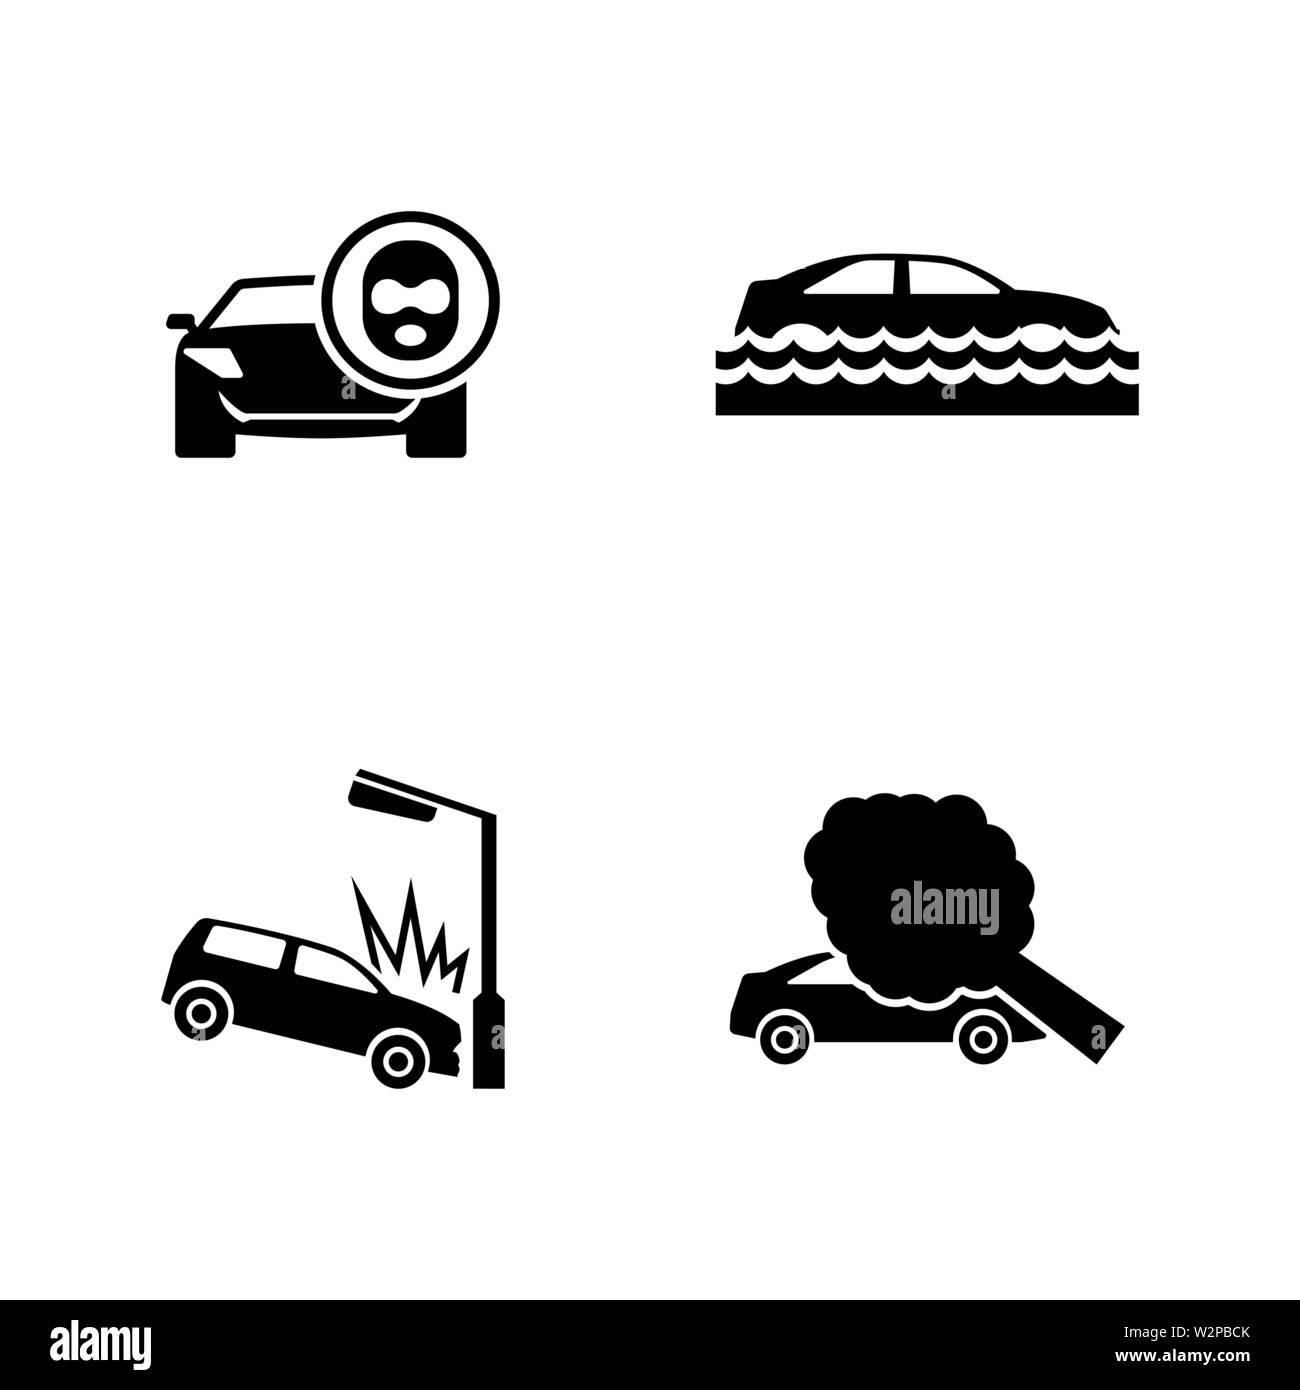 Car Crashes. Simple Related Vector Icons Set for Video, Mobile Apps, Web Sites, Print Projects and Your Design. Black Flat Illustration on White Backg - Stock Vector